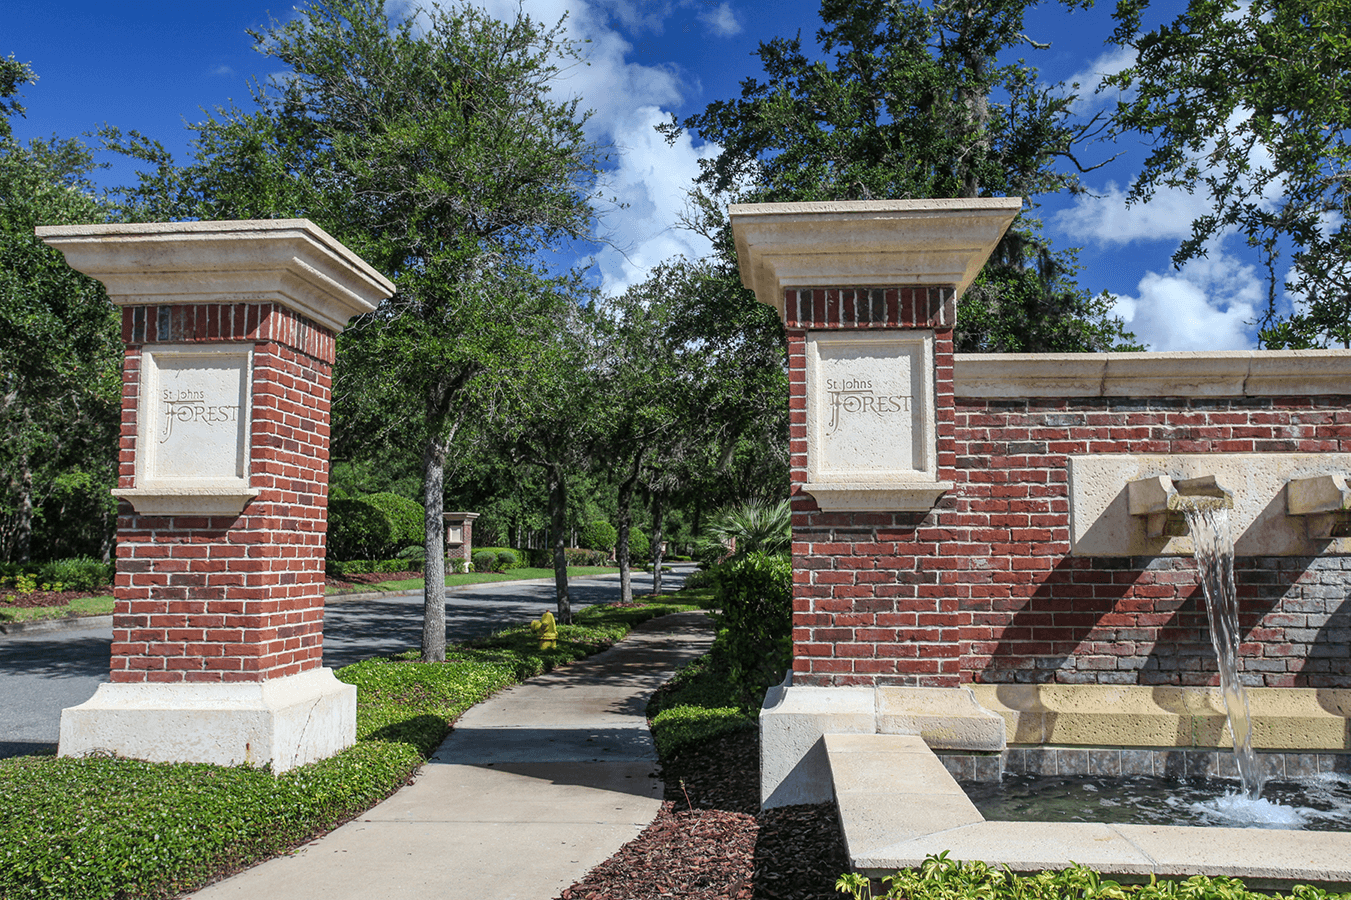 St. Johns Forest subdivision entrance gate.